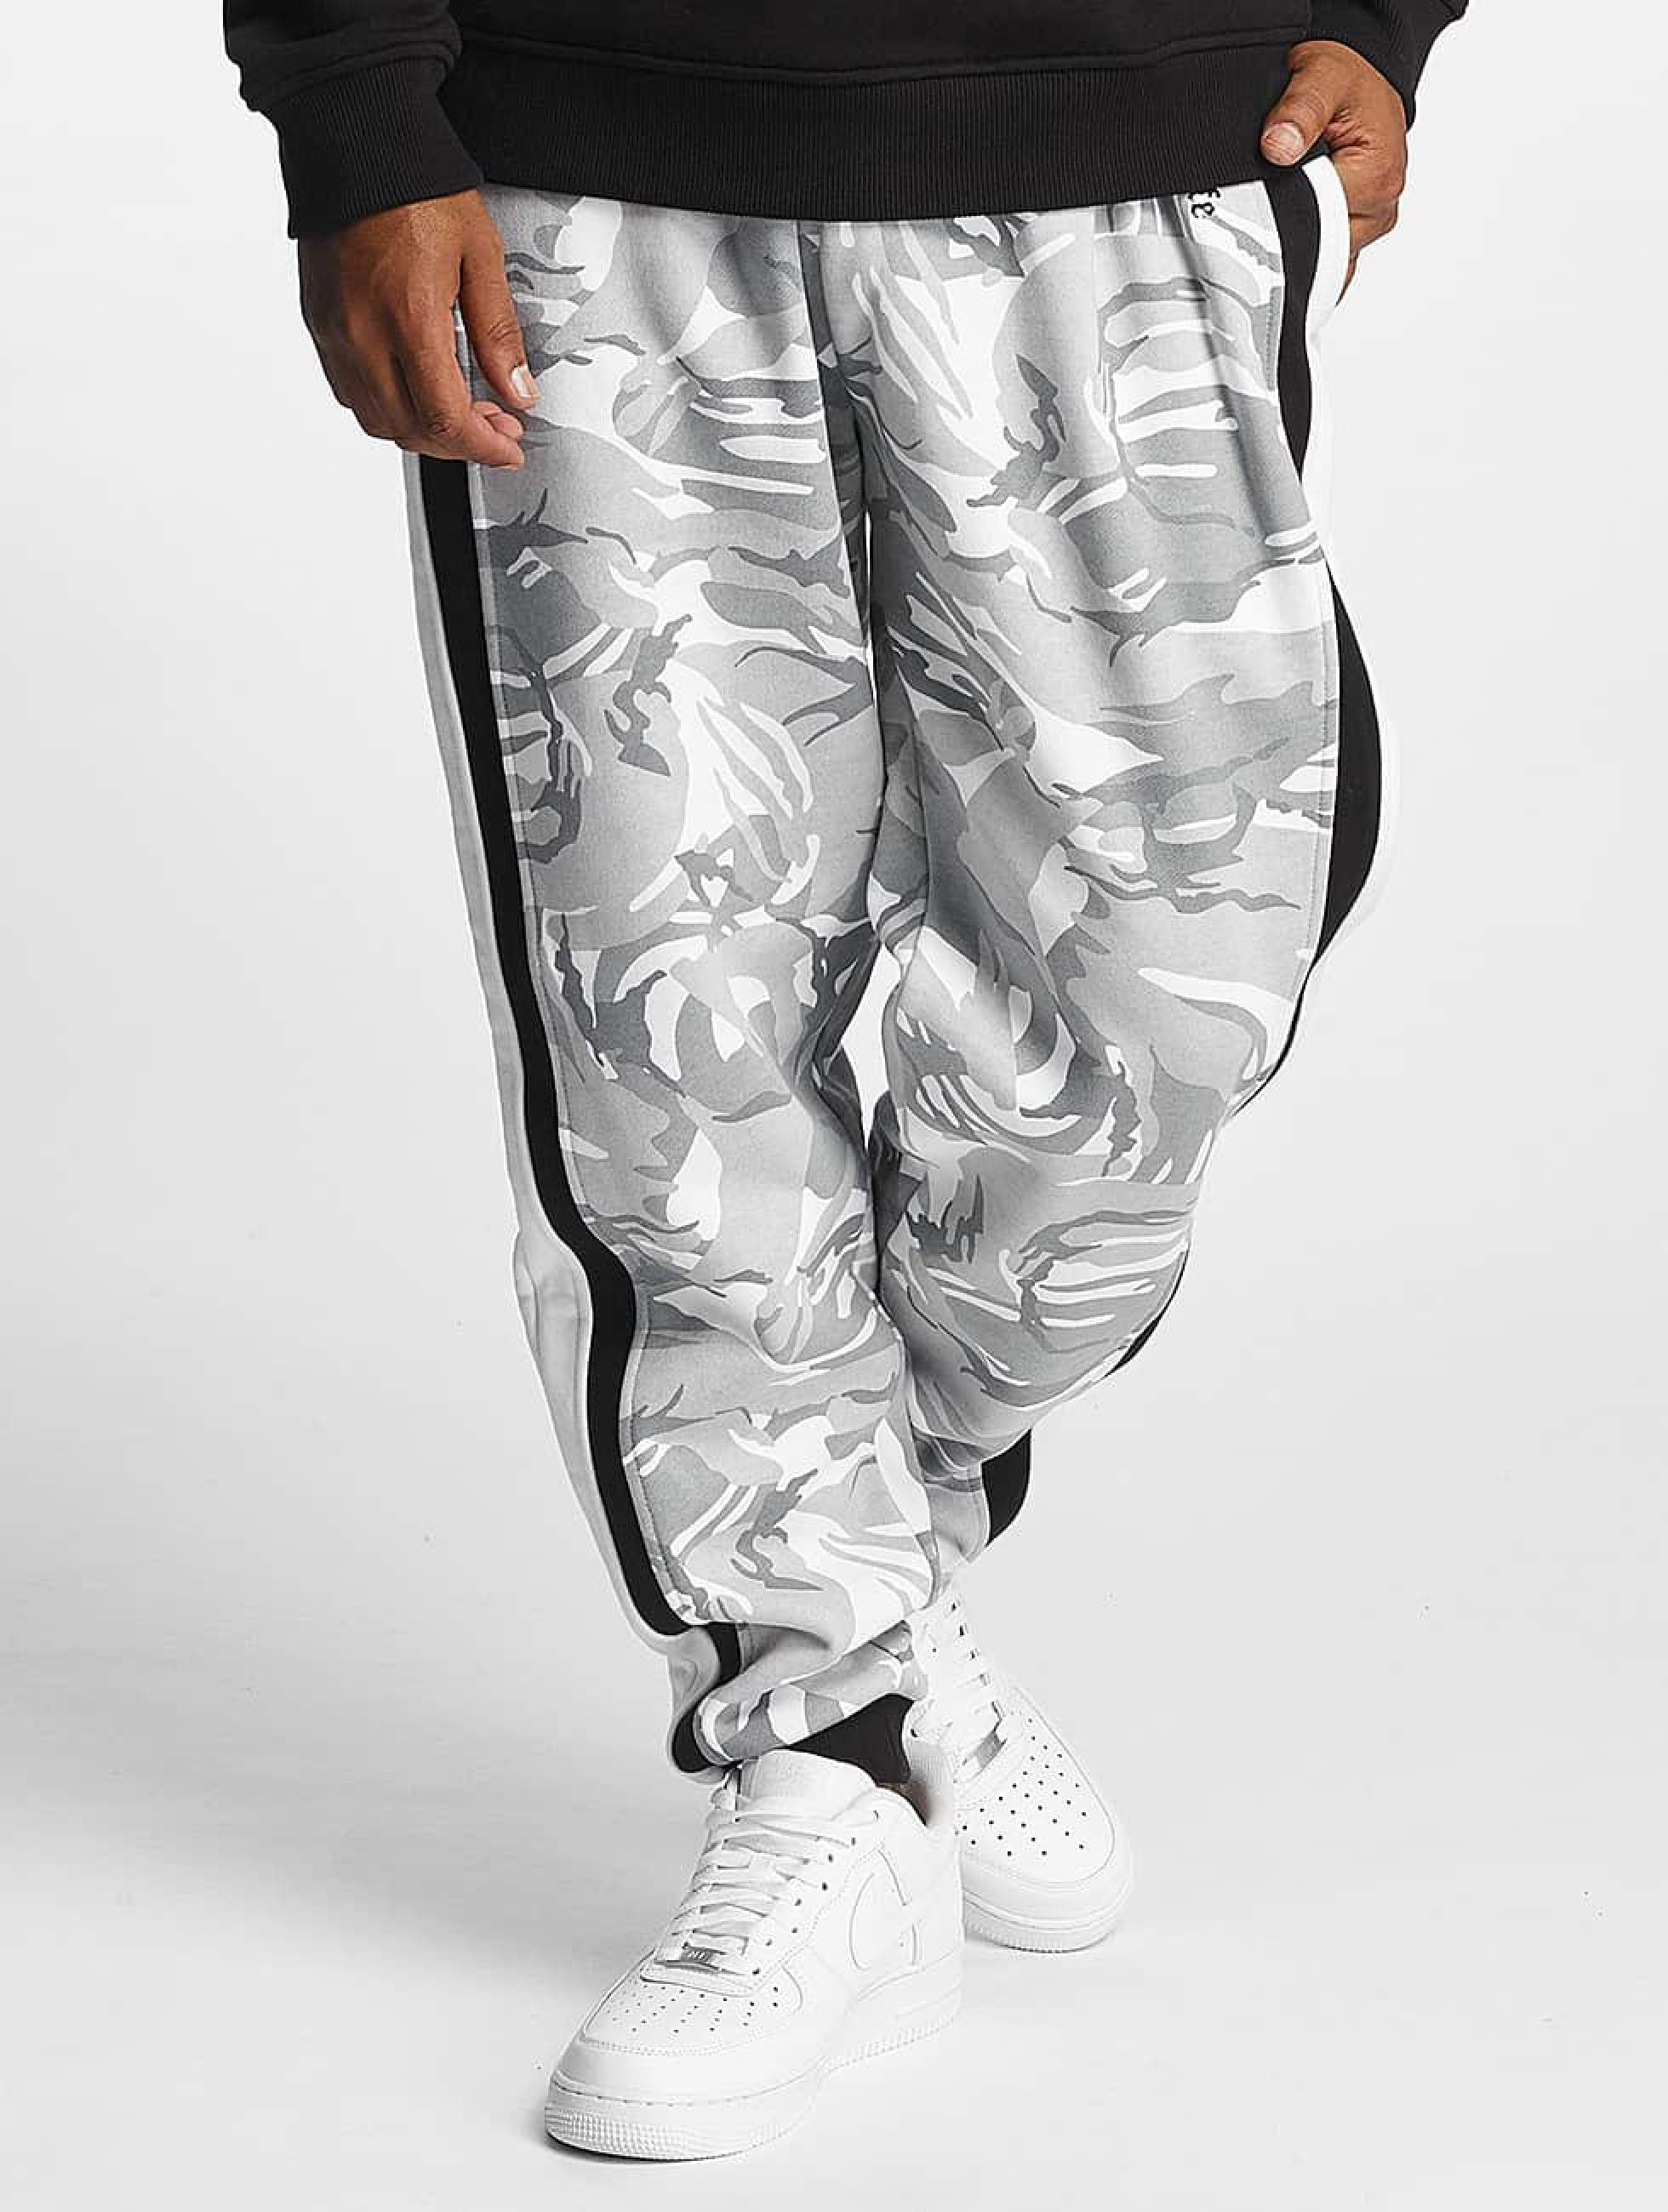 Thug Life / Sweat Pant Lecter in white S